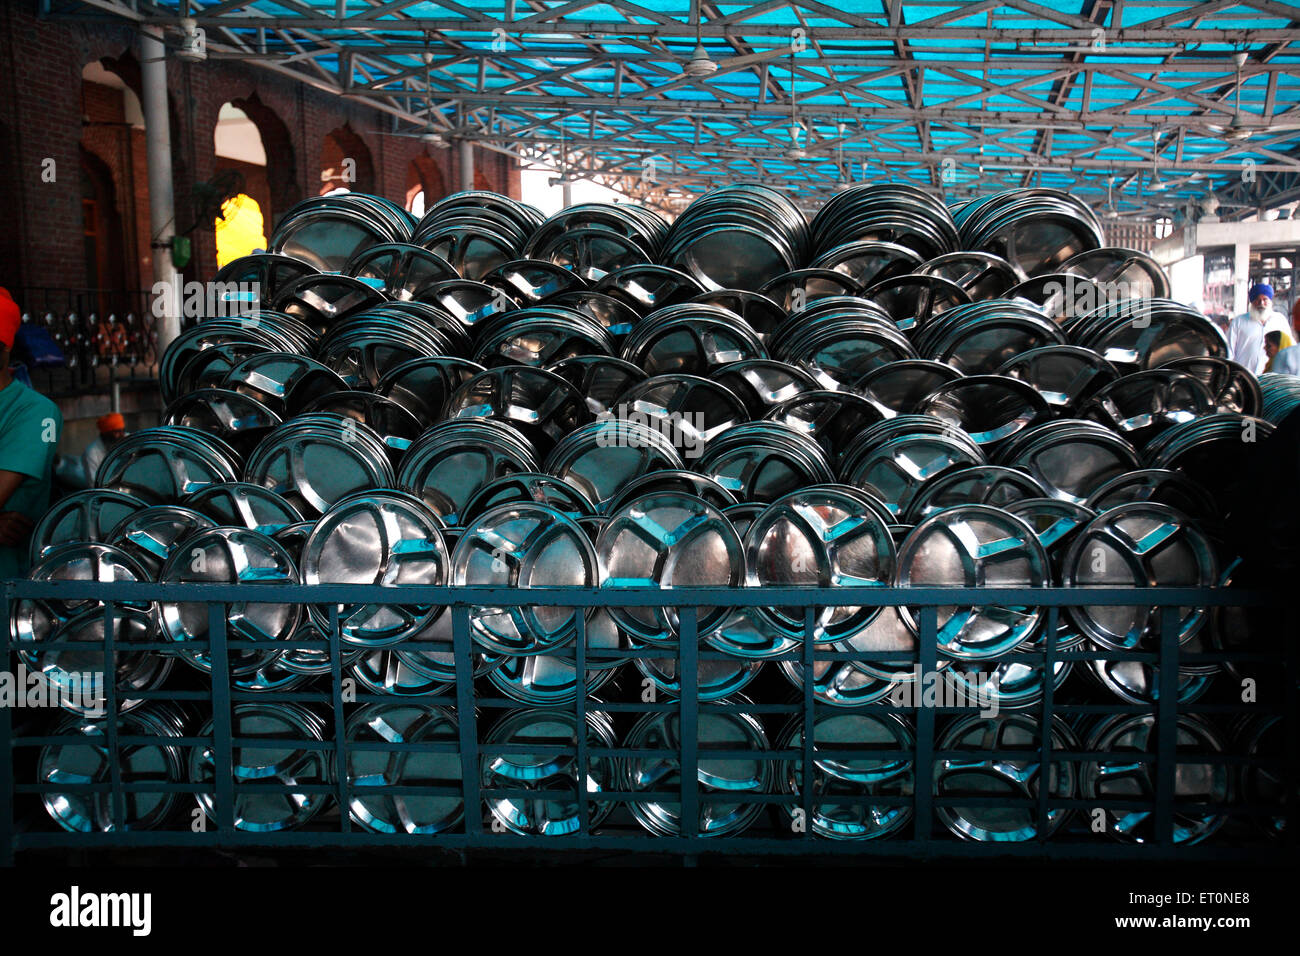 Plates used for langar or community kitchen kept for drying at Harmandir Sahib or Golden Temple in Amritsar ; Punjab - Stock Image